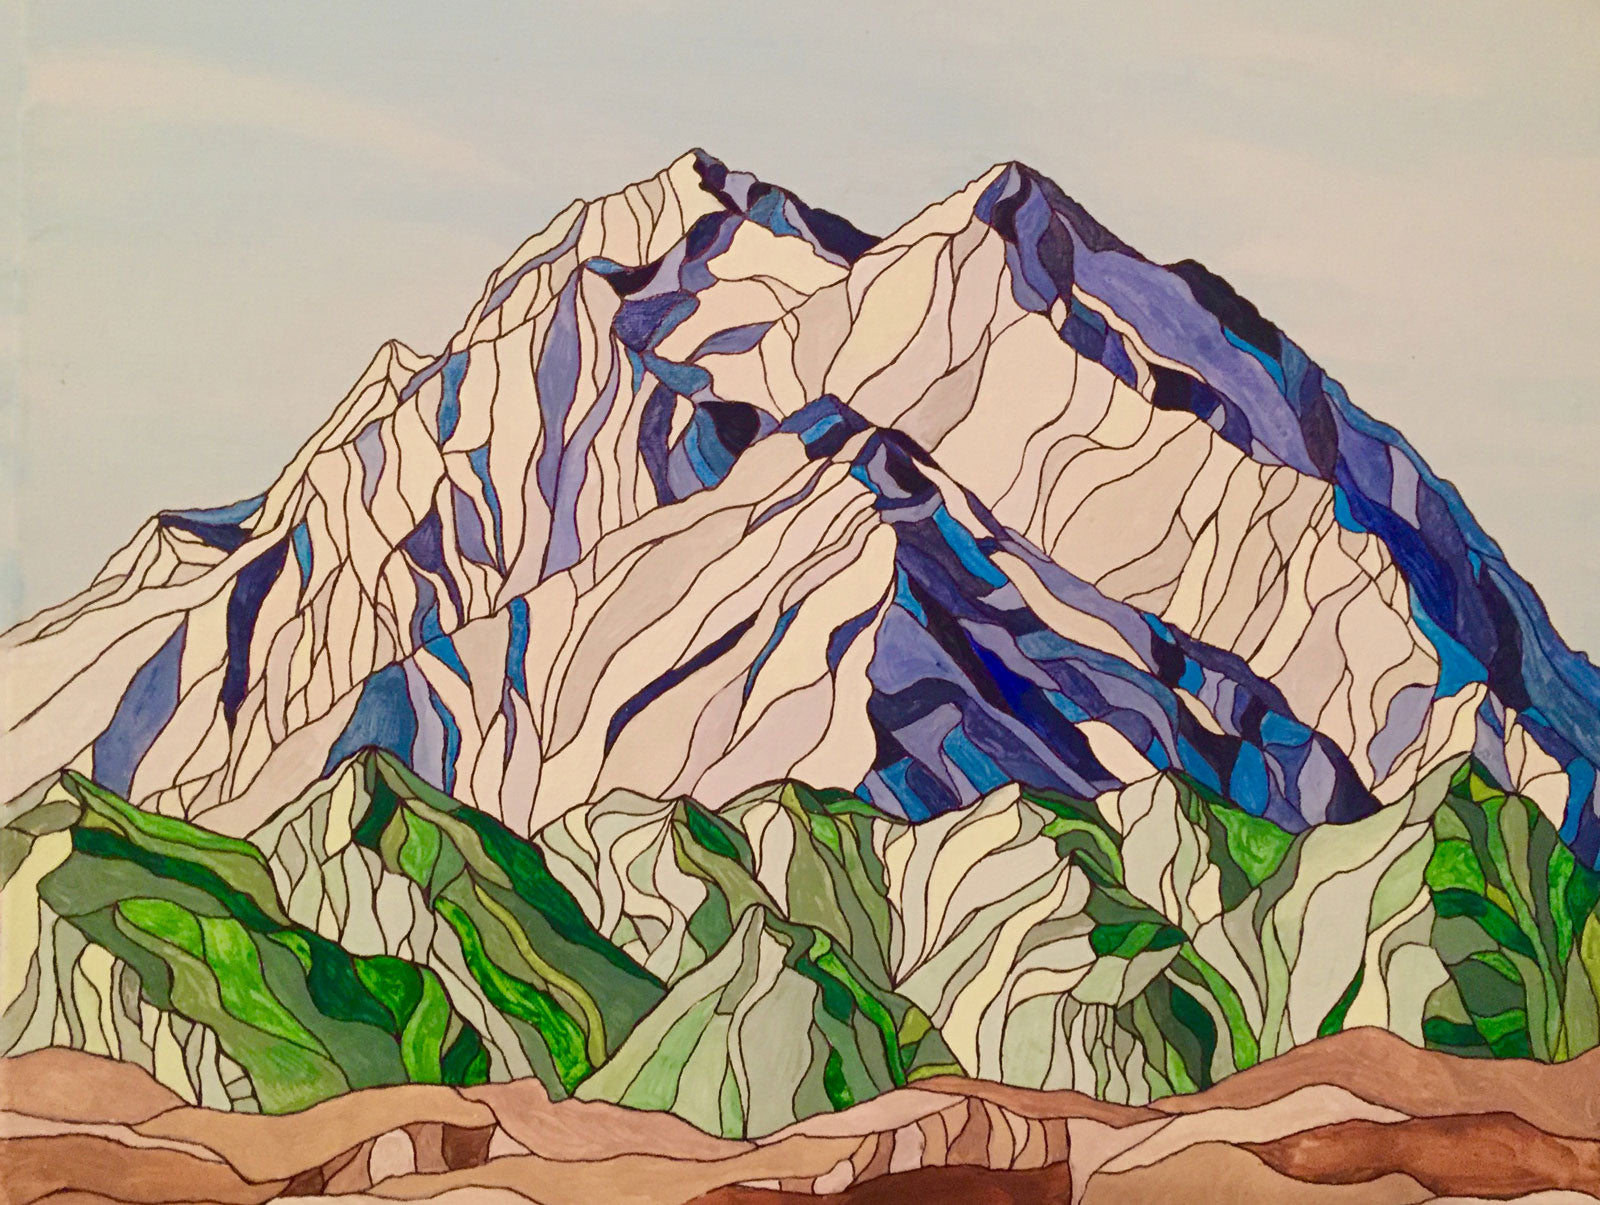 Mt. McKinley | Denali National Park, AK Acrylic and Ink by Artist Kelli Spencer